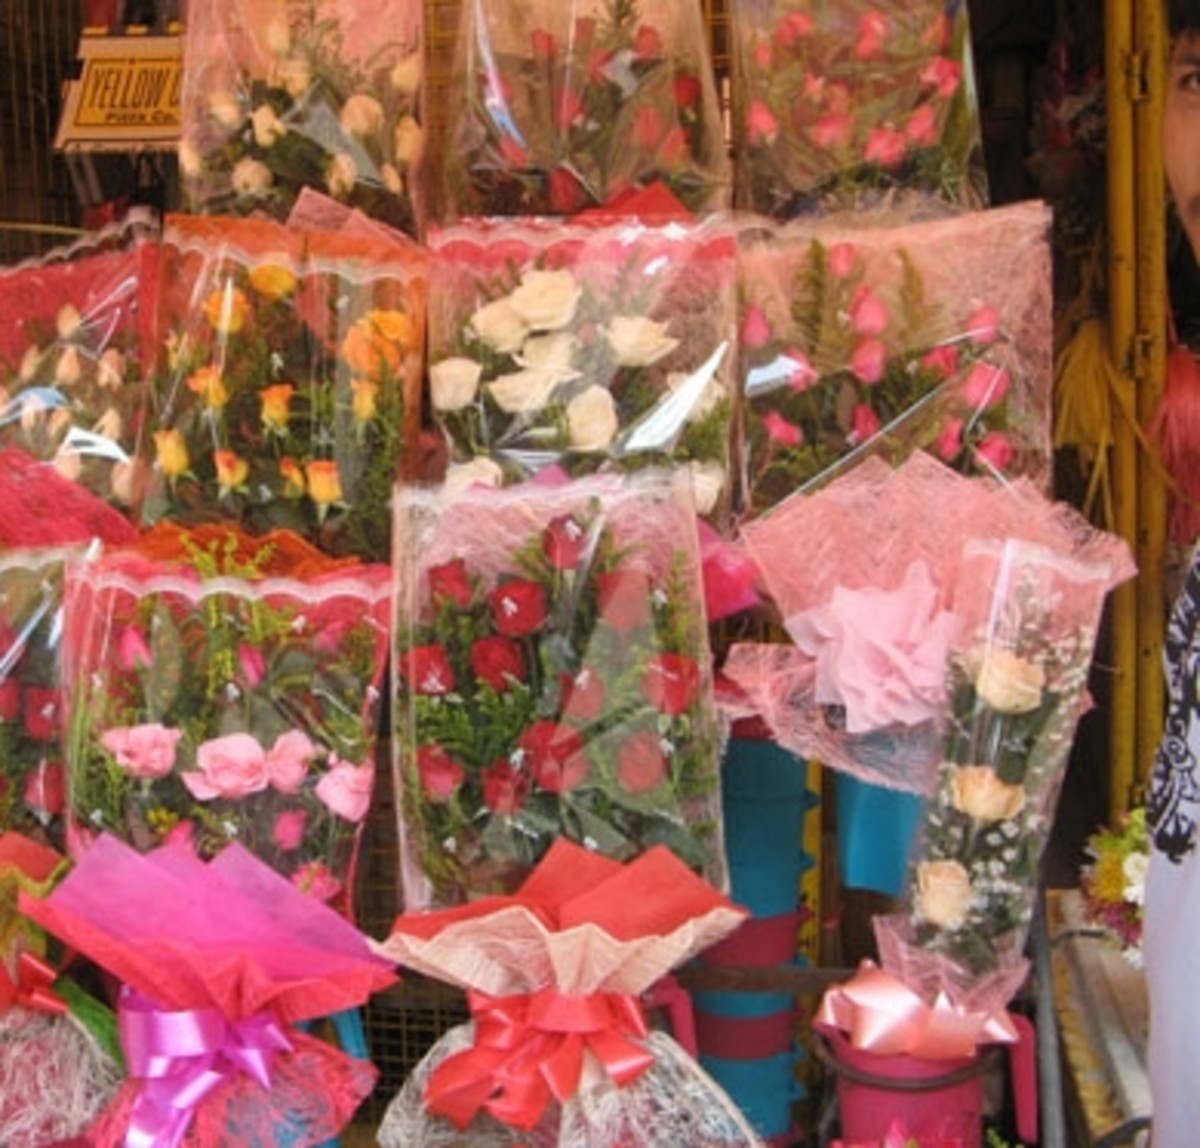 Roses ready to be purchased by buyers (Courtesy of http://photos.the-protagonist.net/dangwa-flower-market/)